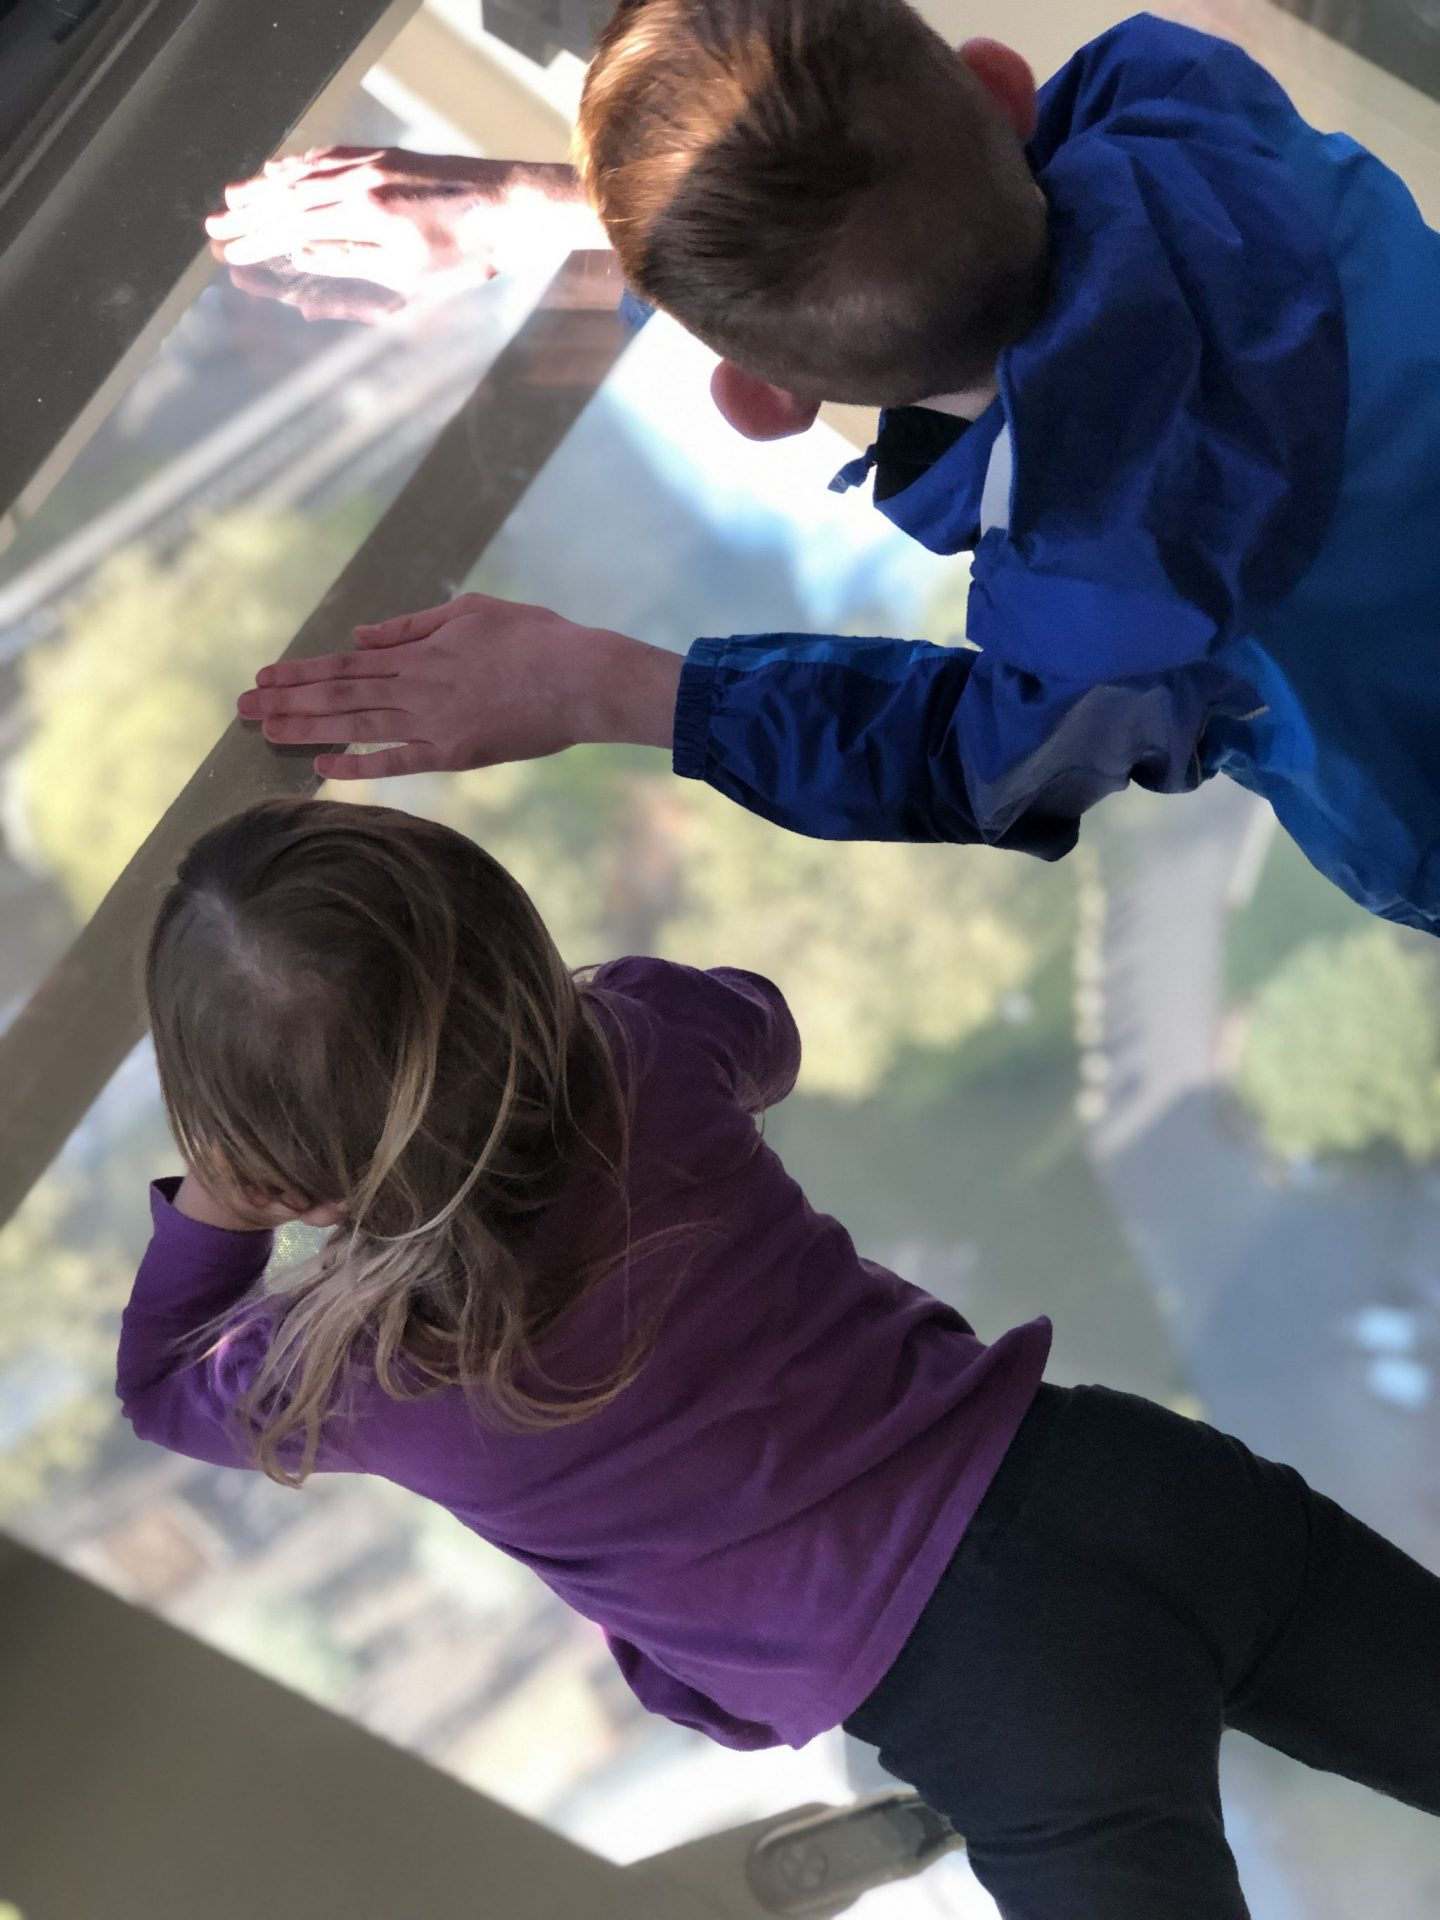 North Carolina blogger Rebecca Lately shares her recent trip to the PNW. This is their itinerary of family friendly activities in Seattle and the area.